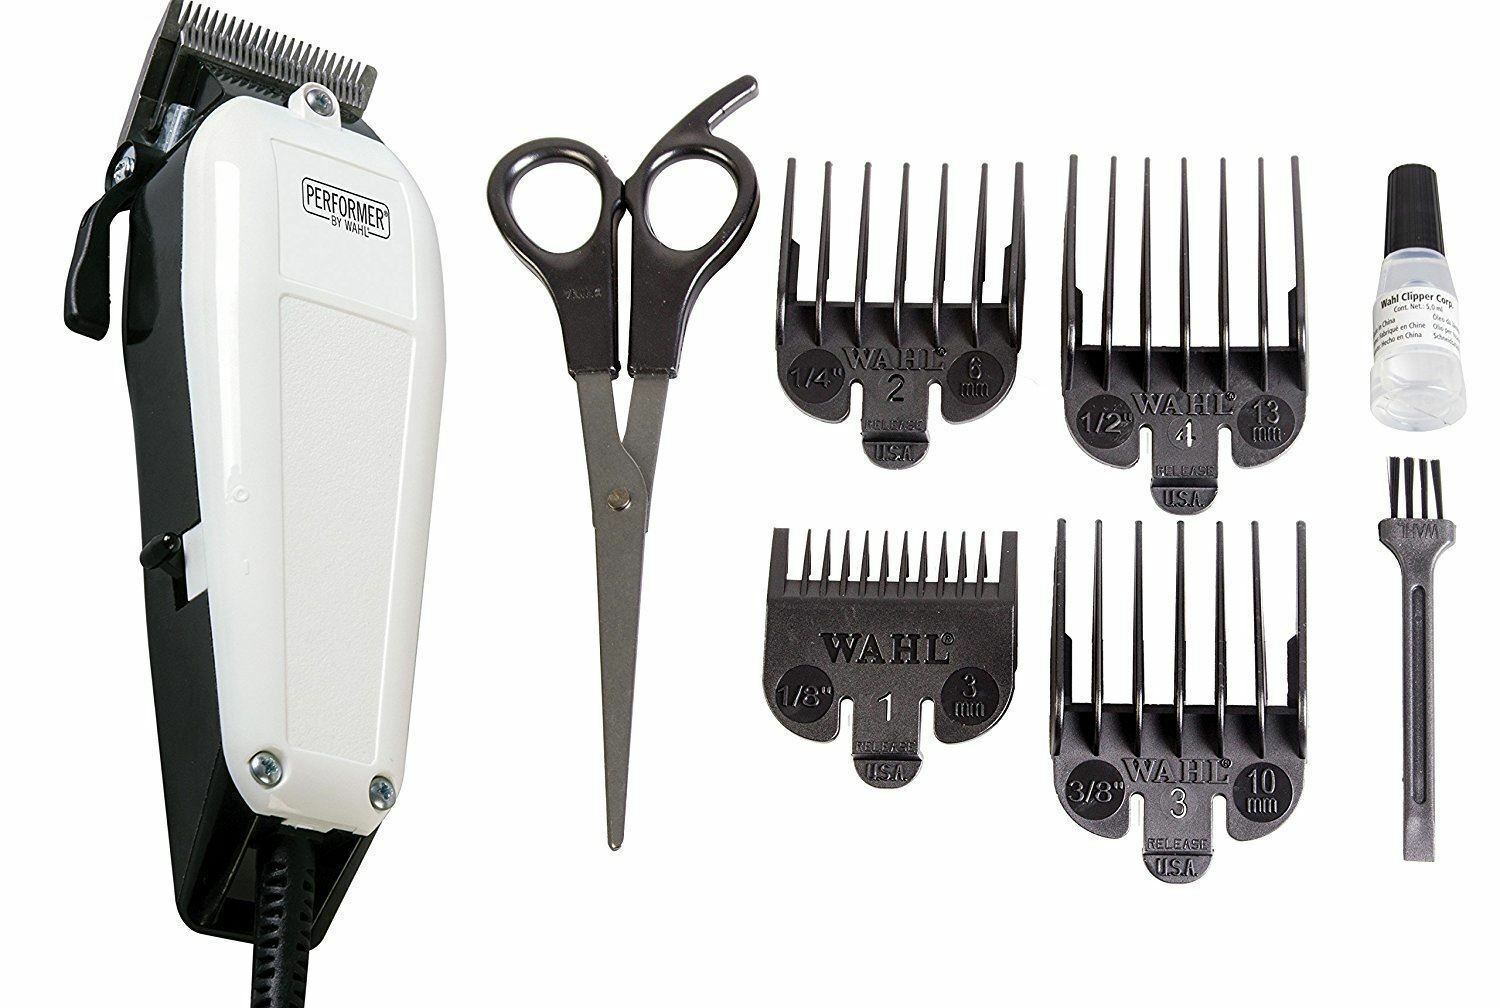 Esecutore by WAHL Cane Clipper Kit Pet Grooming Trimmer Set